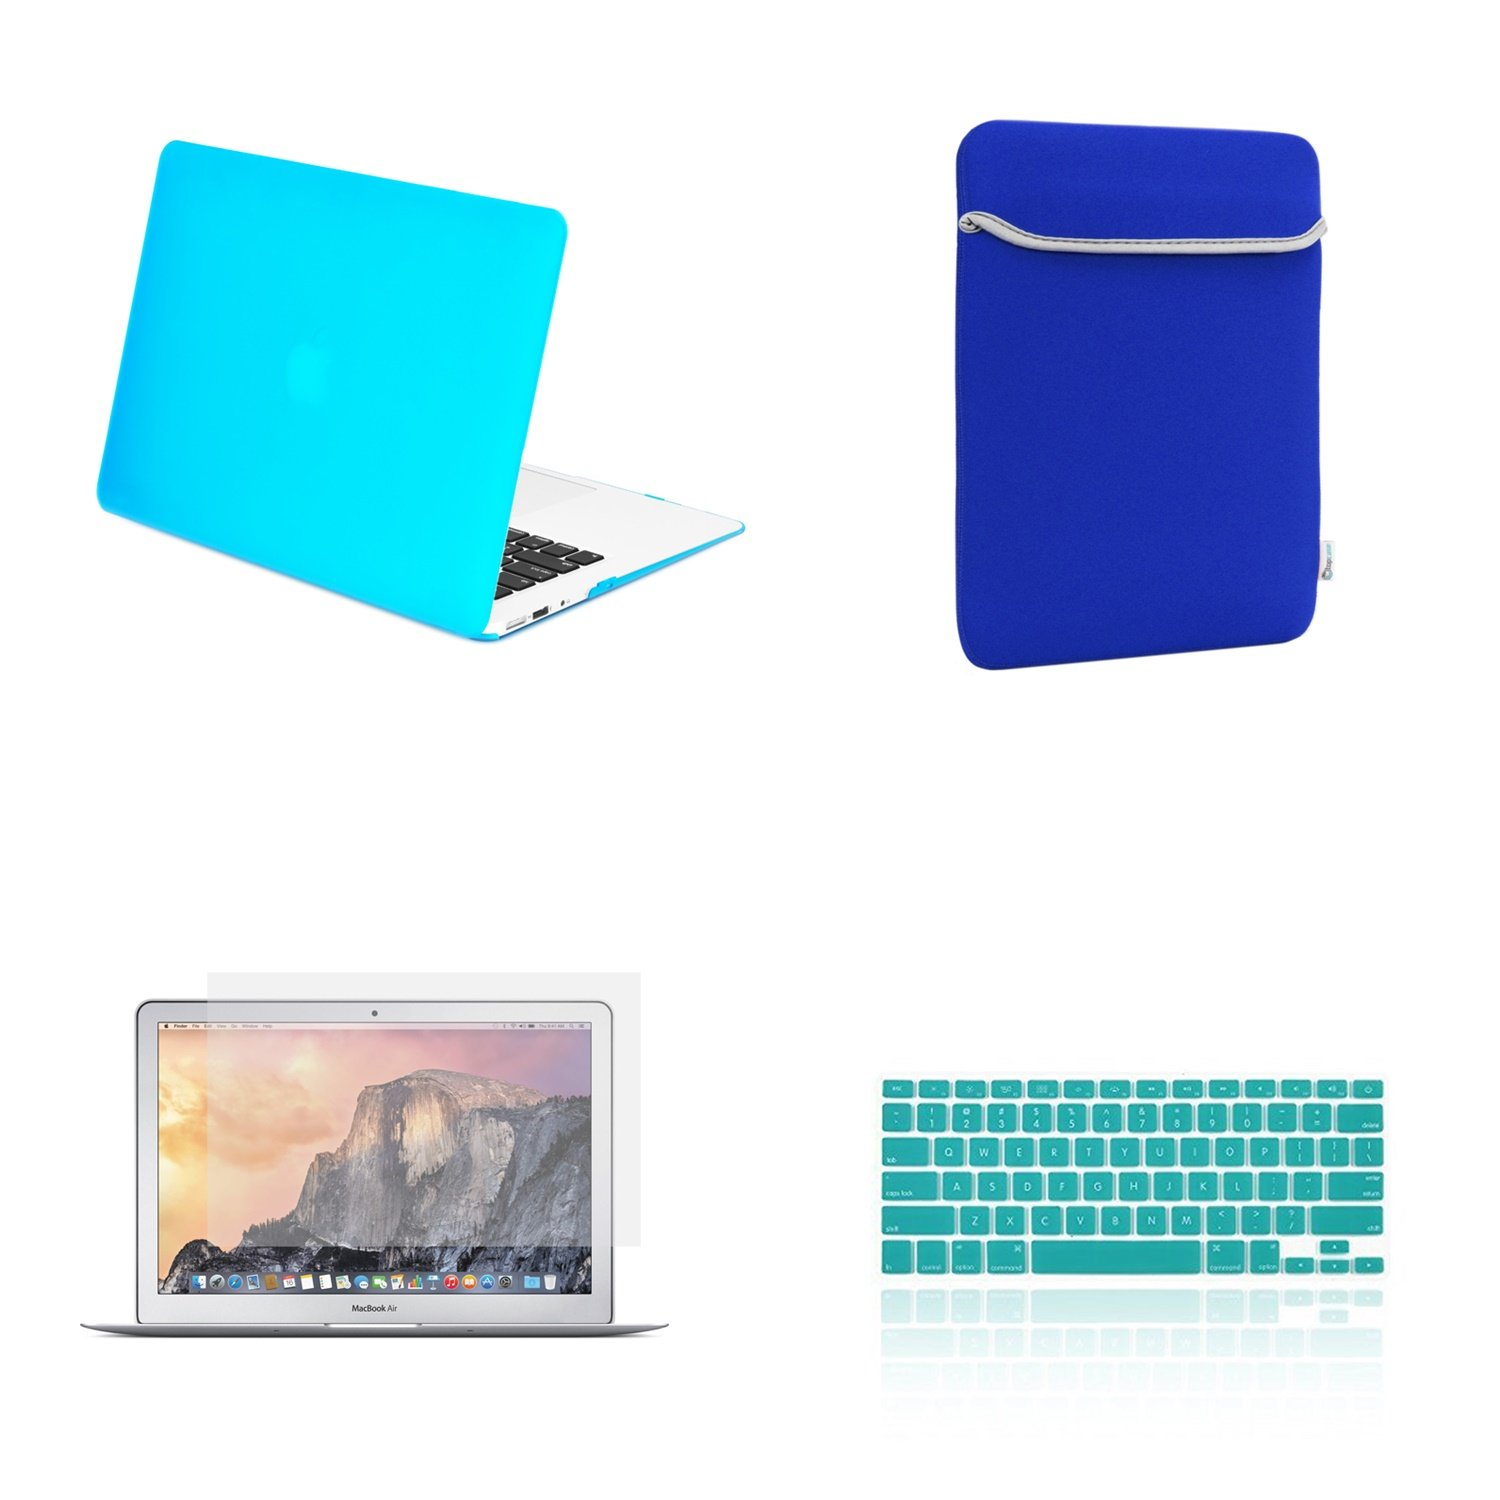 """TOP CASE - 4 in 1 Essential Bundle Rubberized Hard Case, Keyboard Cover, Screen Protector, Sleeve Bag Compatible MacBook Air 13"""" Model: A1466 & A1369 (Older Version, Release 2010-2017) - Aqua Blue"""